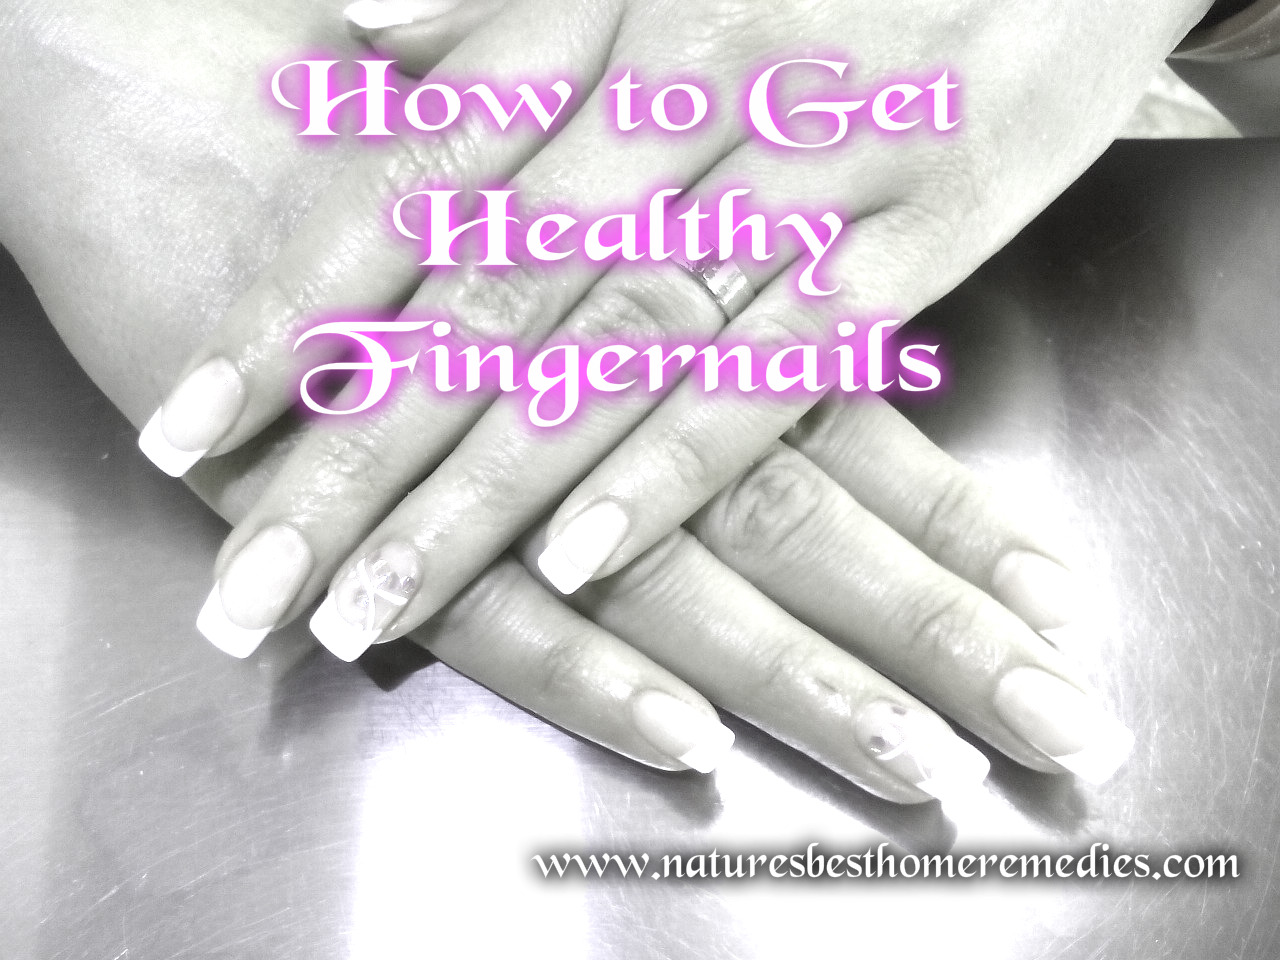 How to keep you fingernails Healthy and Strong